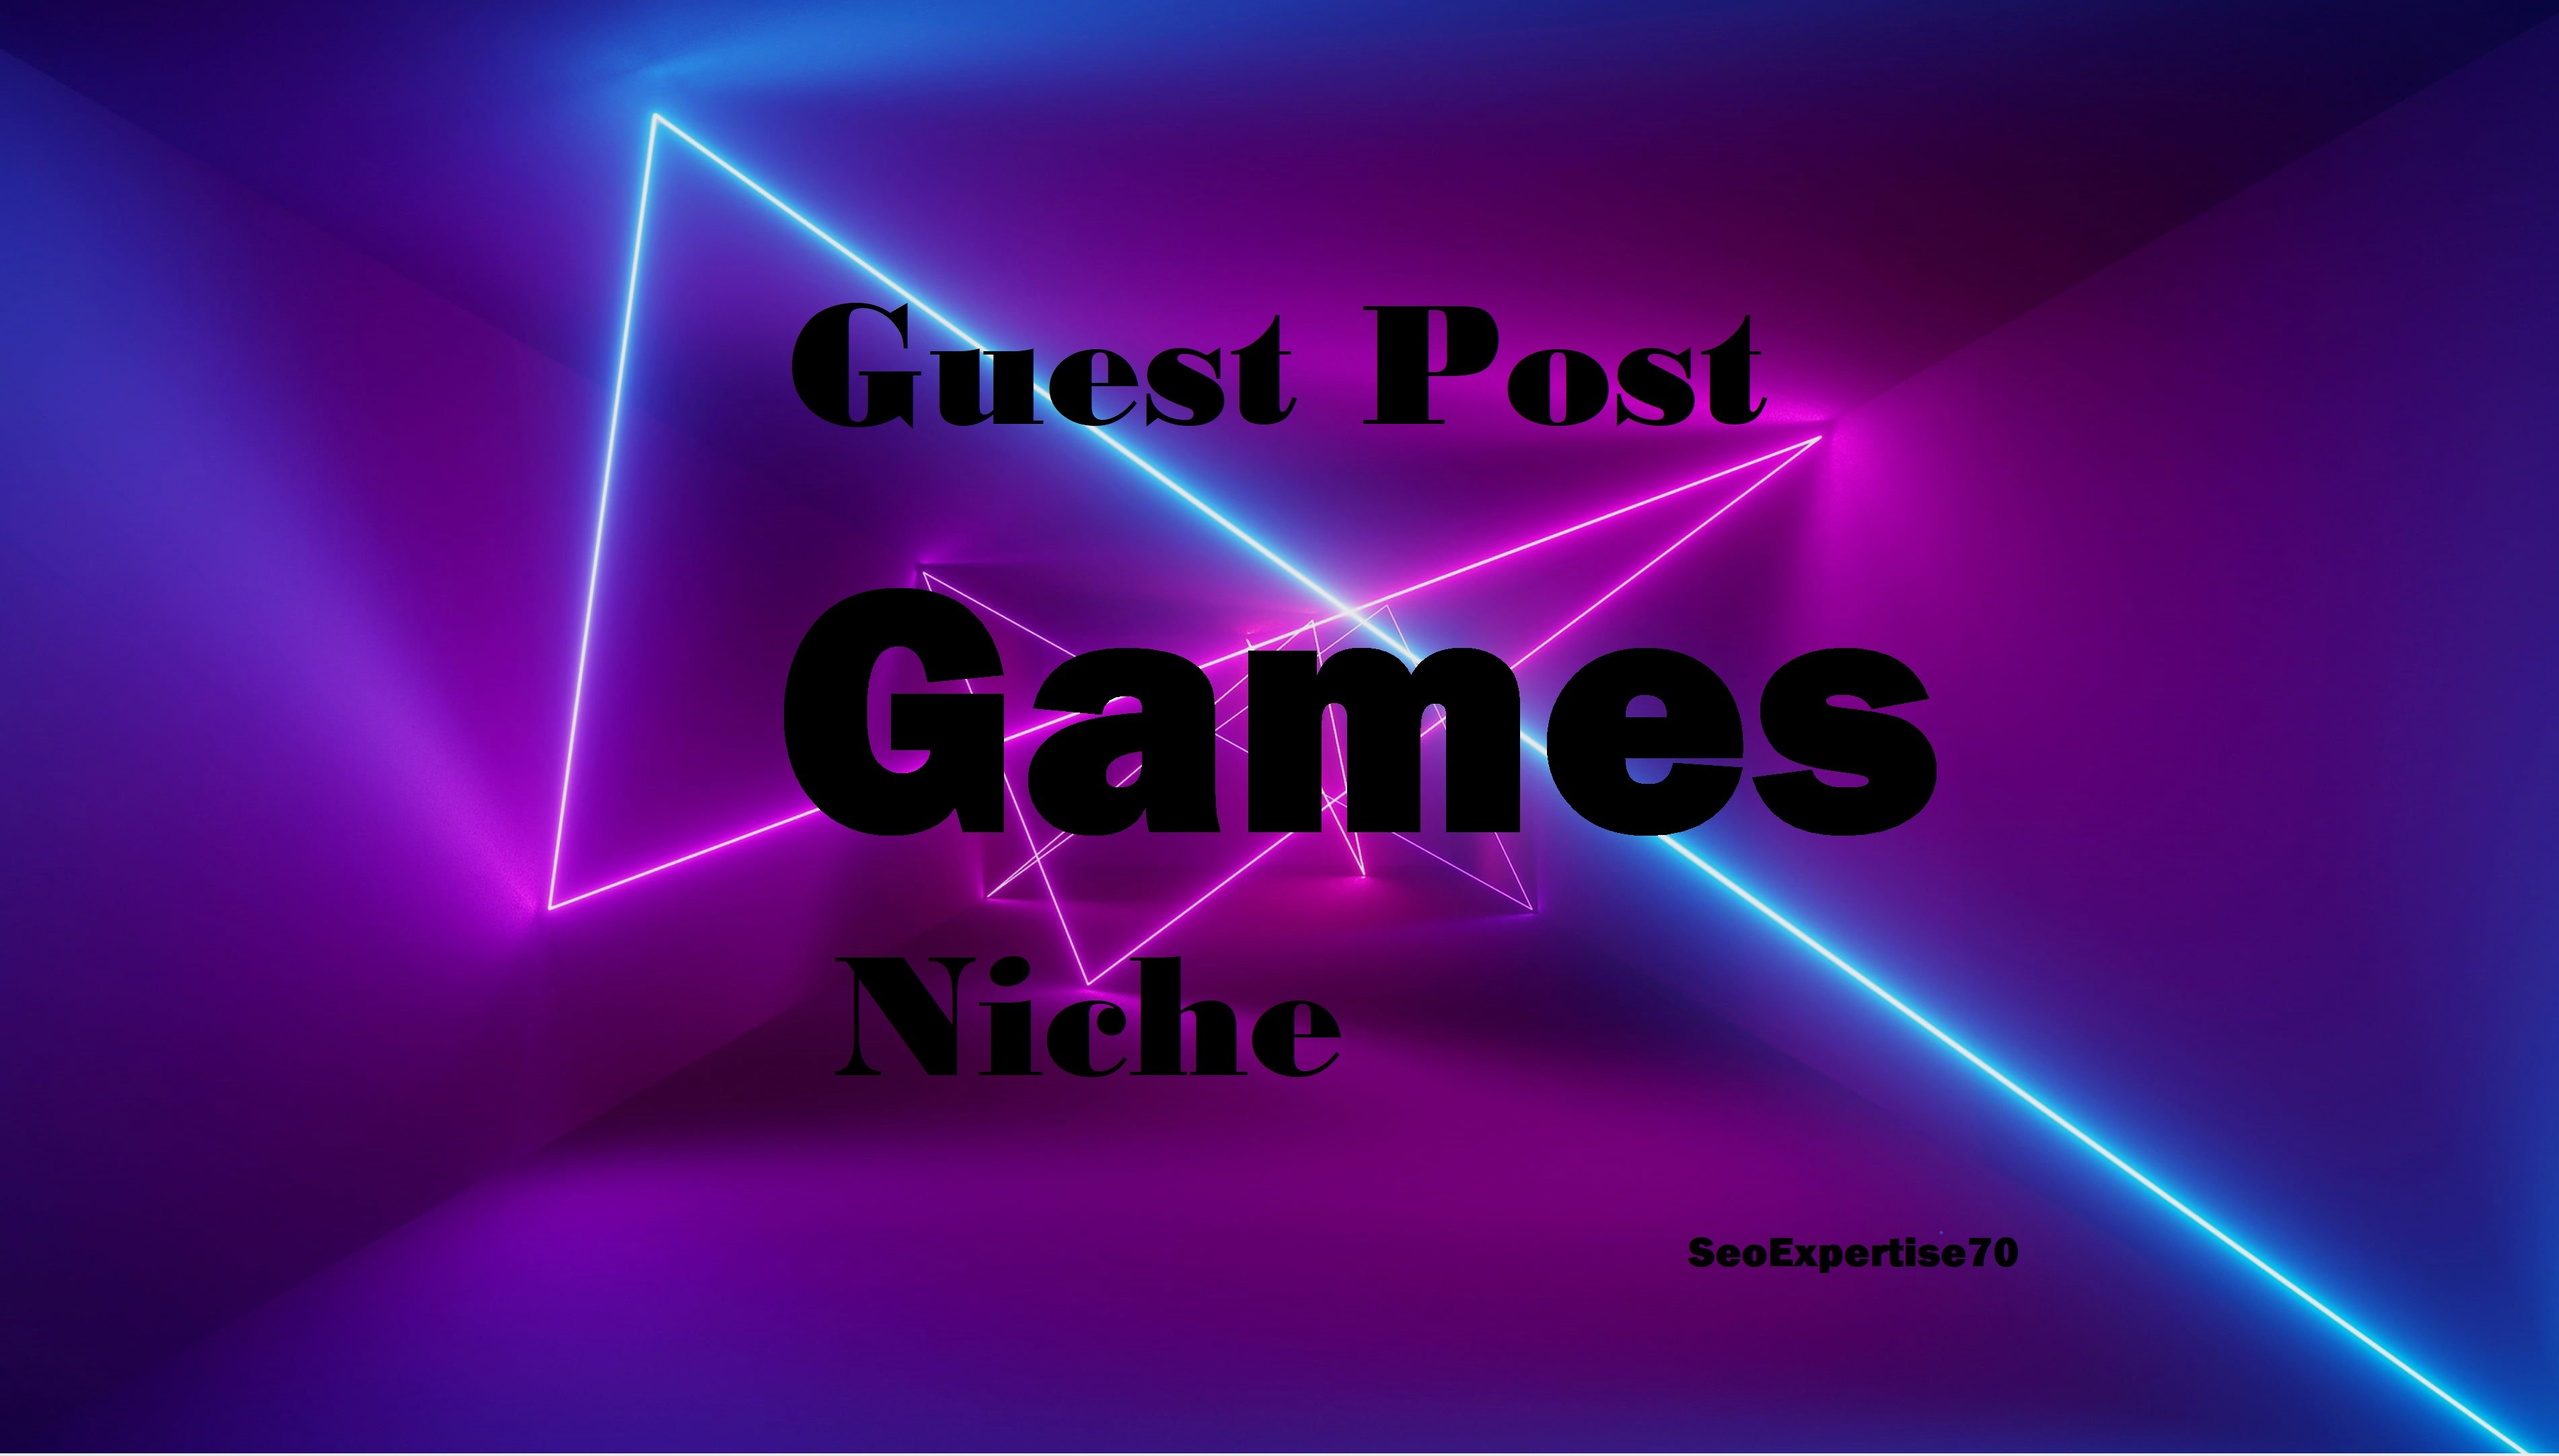 I Will Publish 2 Games Niche Guest Post on High Authority Sites